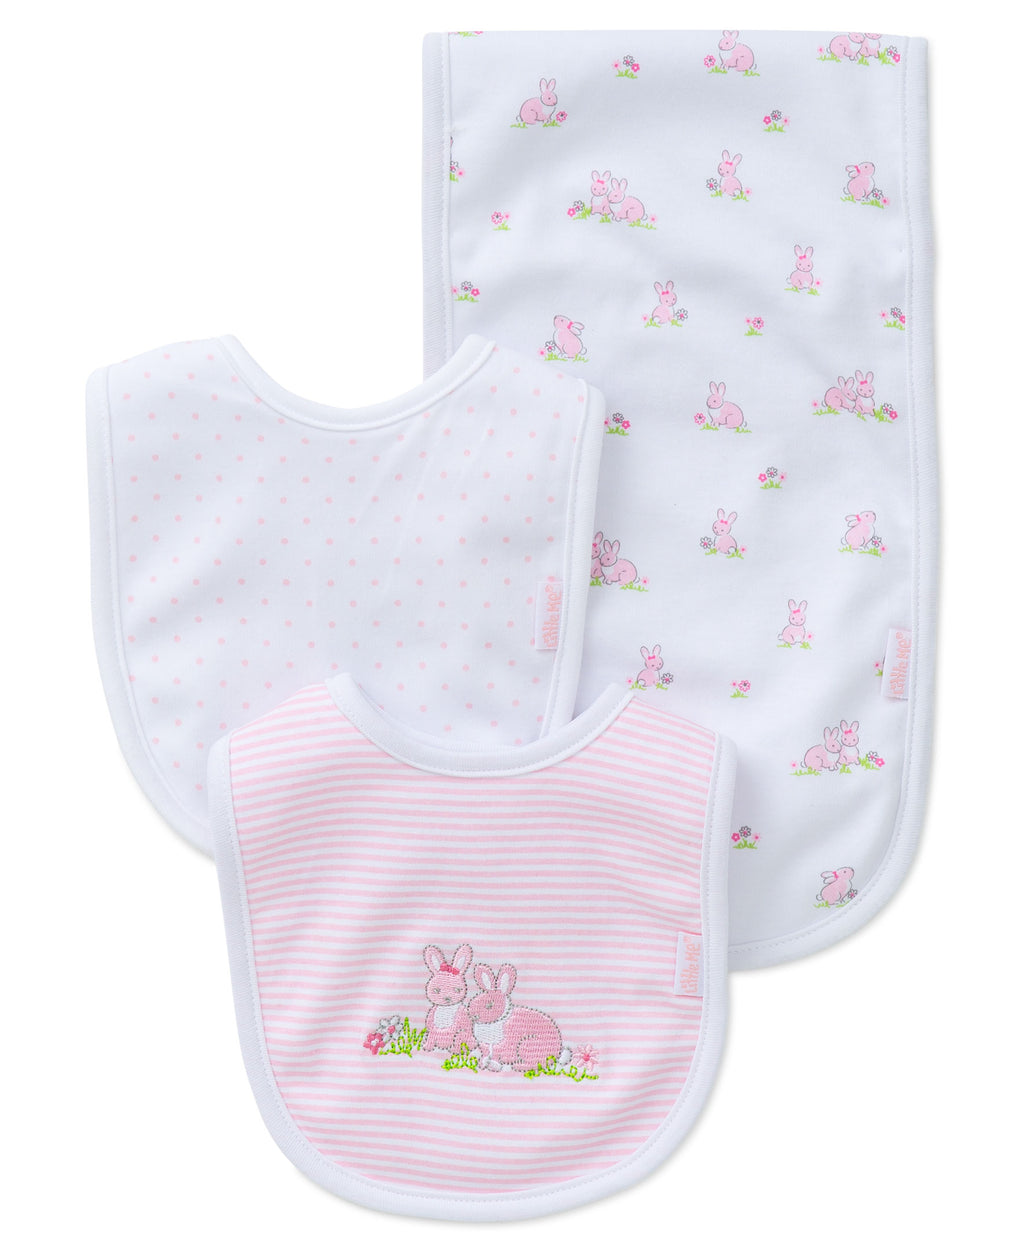 Baby Bunnies Bib & Burp Set